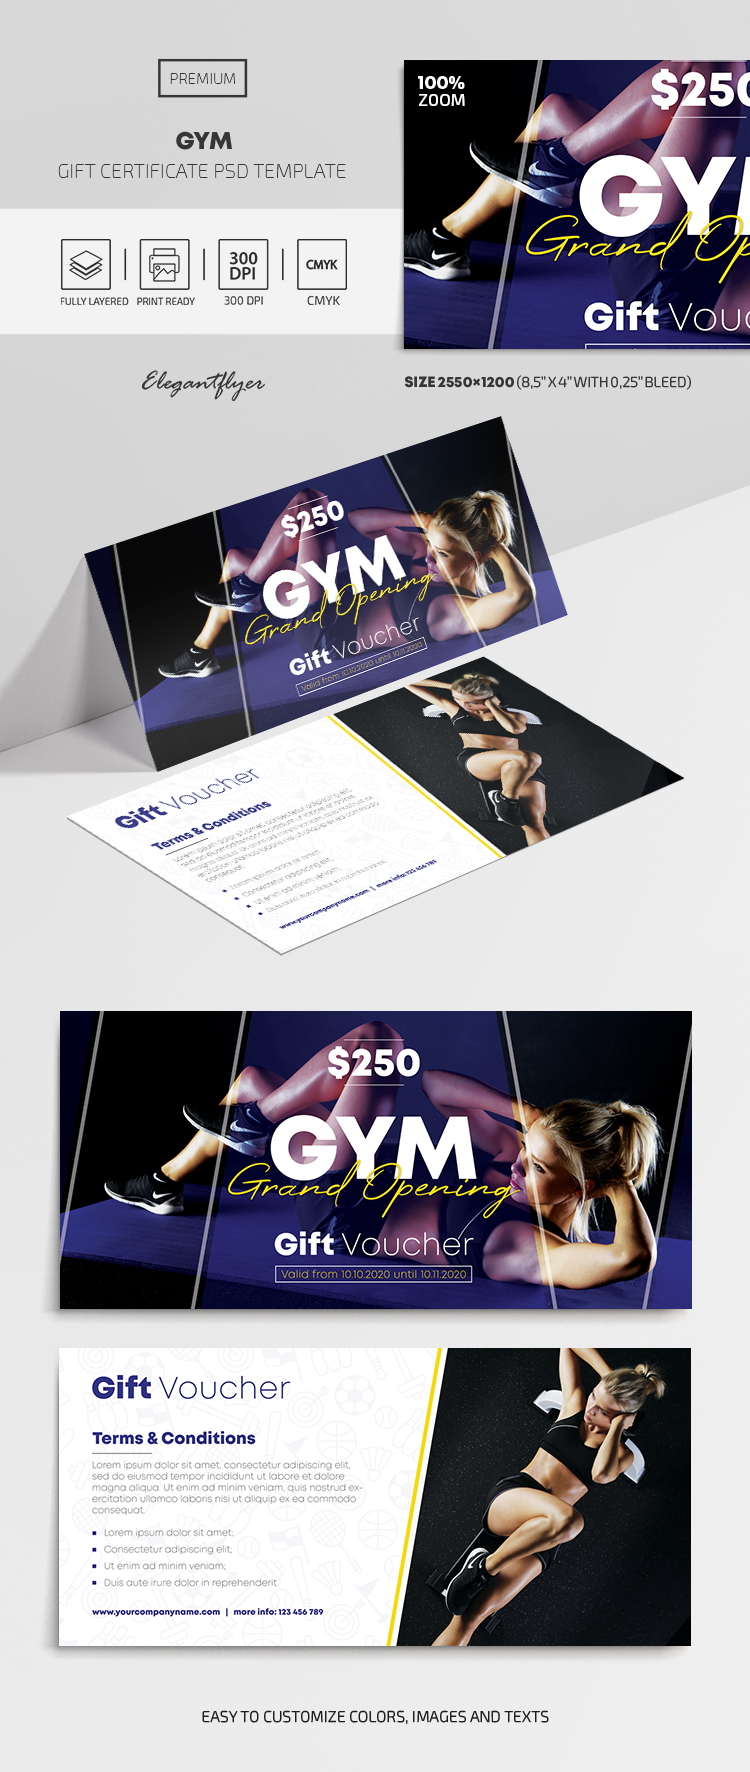 GYM – Premium Gift Certificate Template in PSD